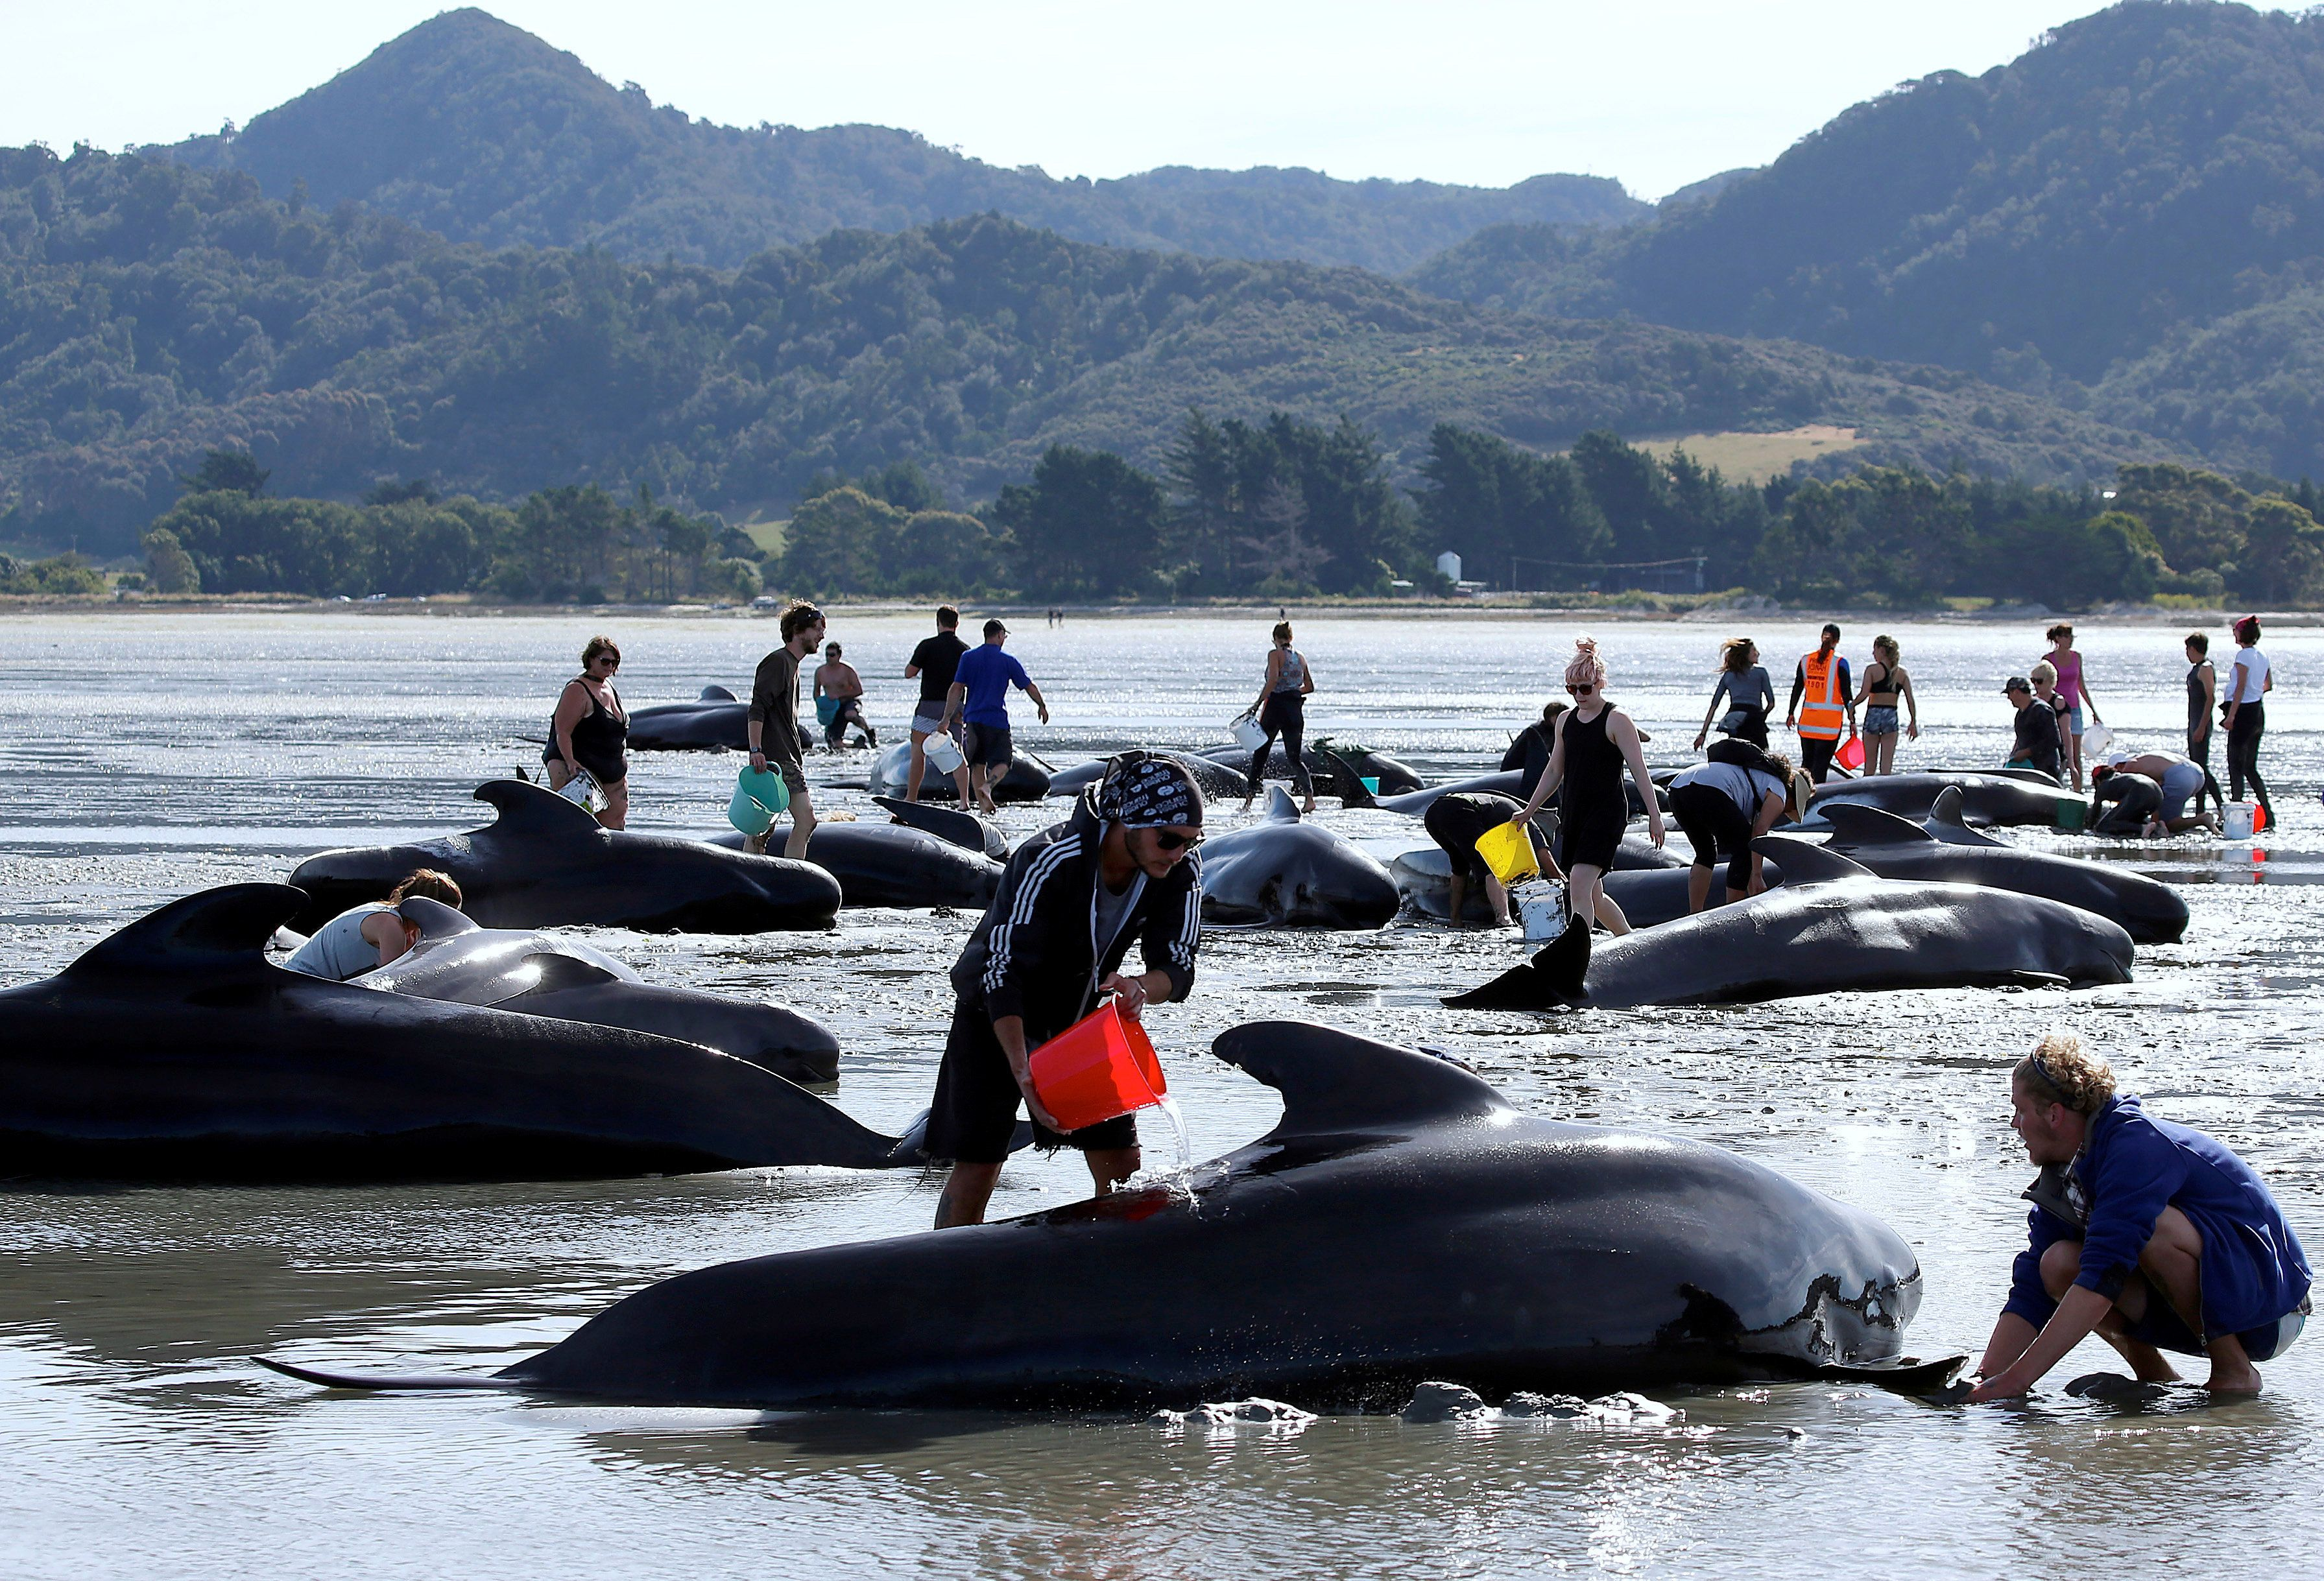 Tragedy As Hundreds More Pilot Whales Beach Themselves In New Zealand, Bringing The Total To